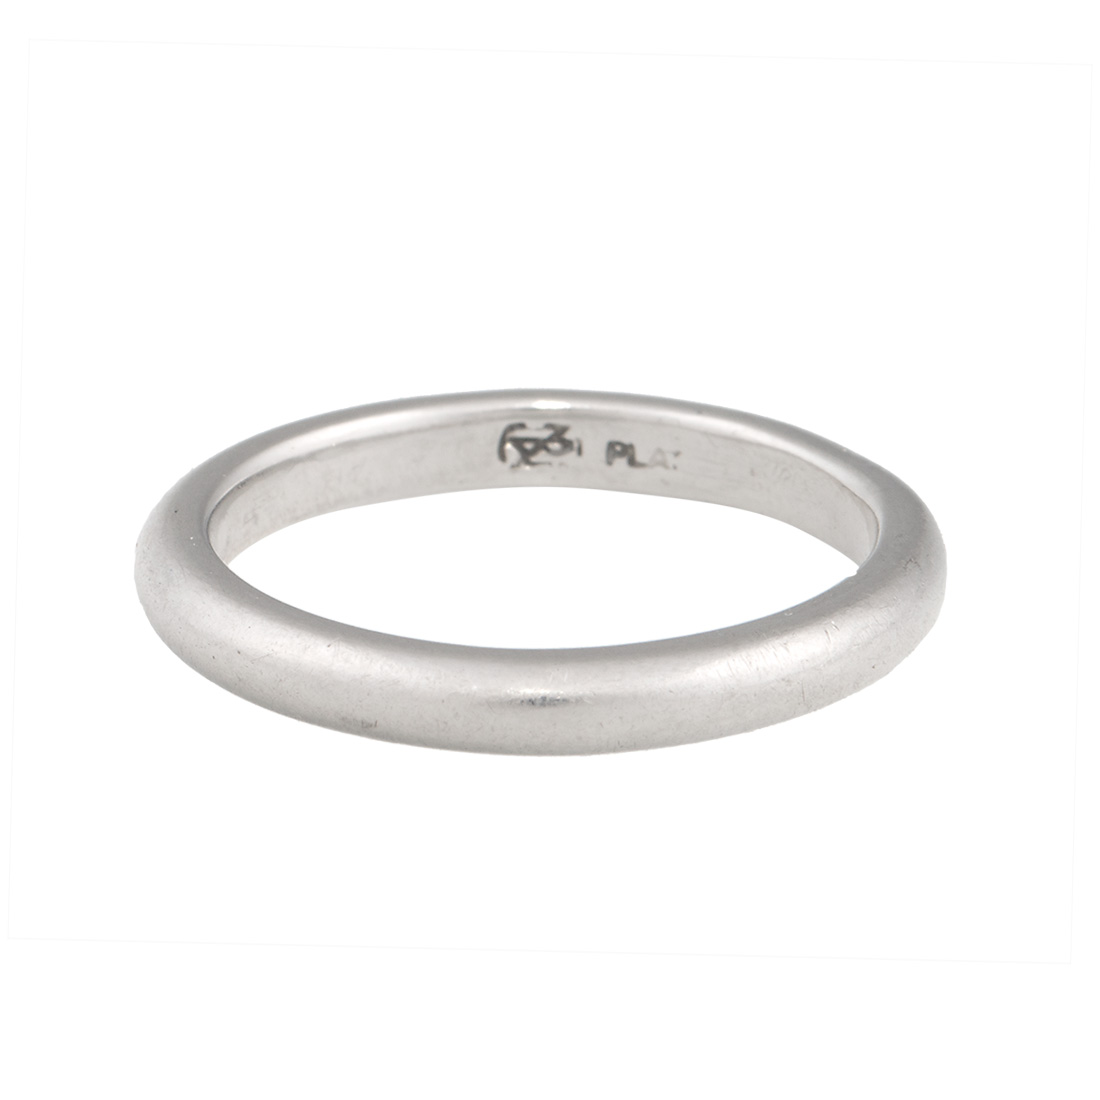 "Image of ""Blue Nile Platinum Wedding Band Ring Size 5.25"""